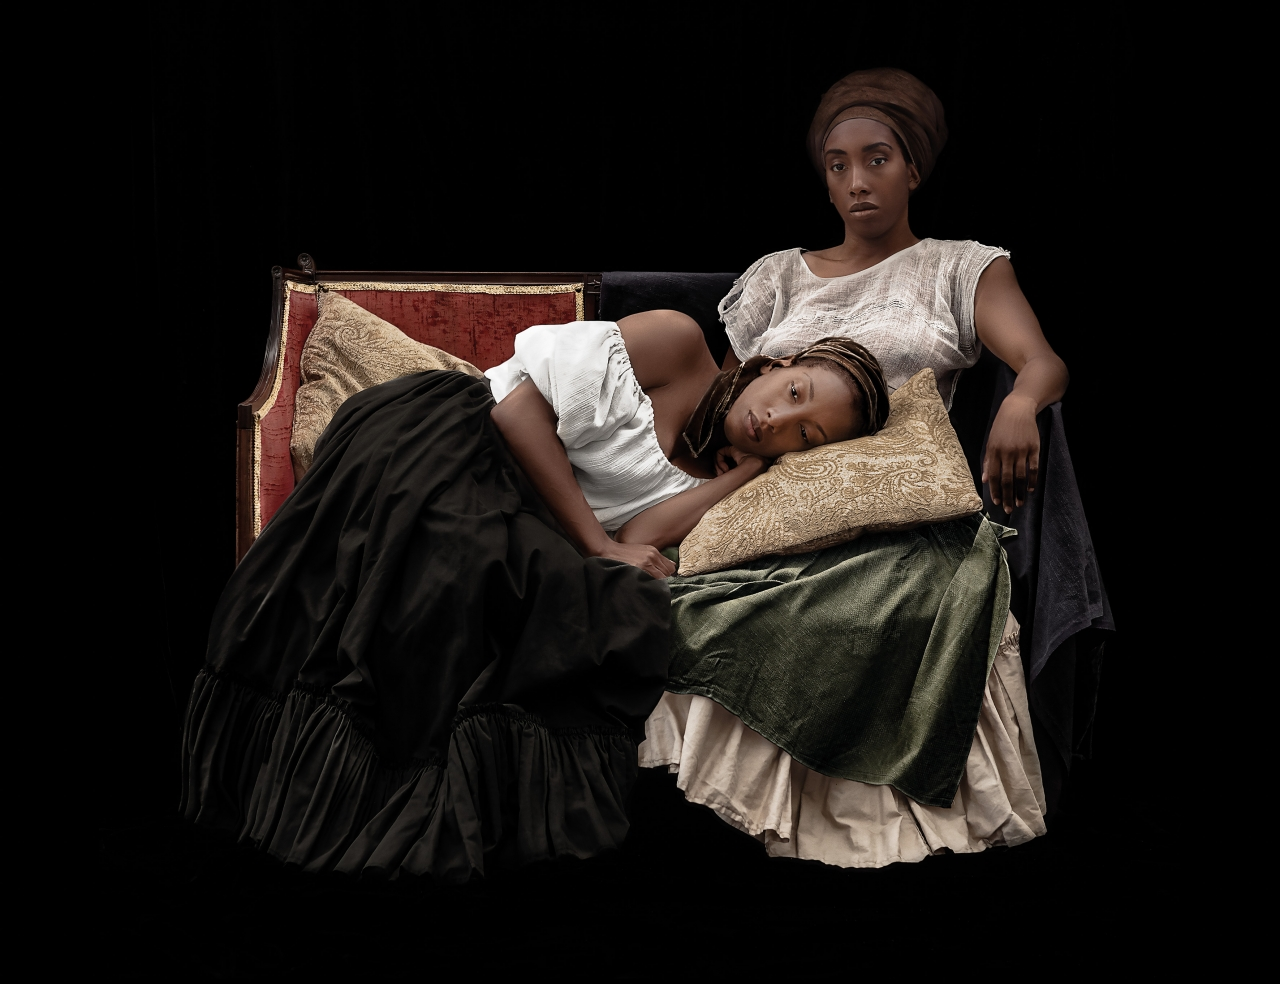 Ayana V. Jackson,  Moments of Sweet Reprieve , from the series  Intimate Justice in the Stolen Moment , 2017. Courtesy of the artist and Galerie Baudoin Lebon.